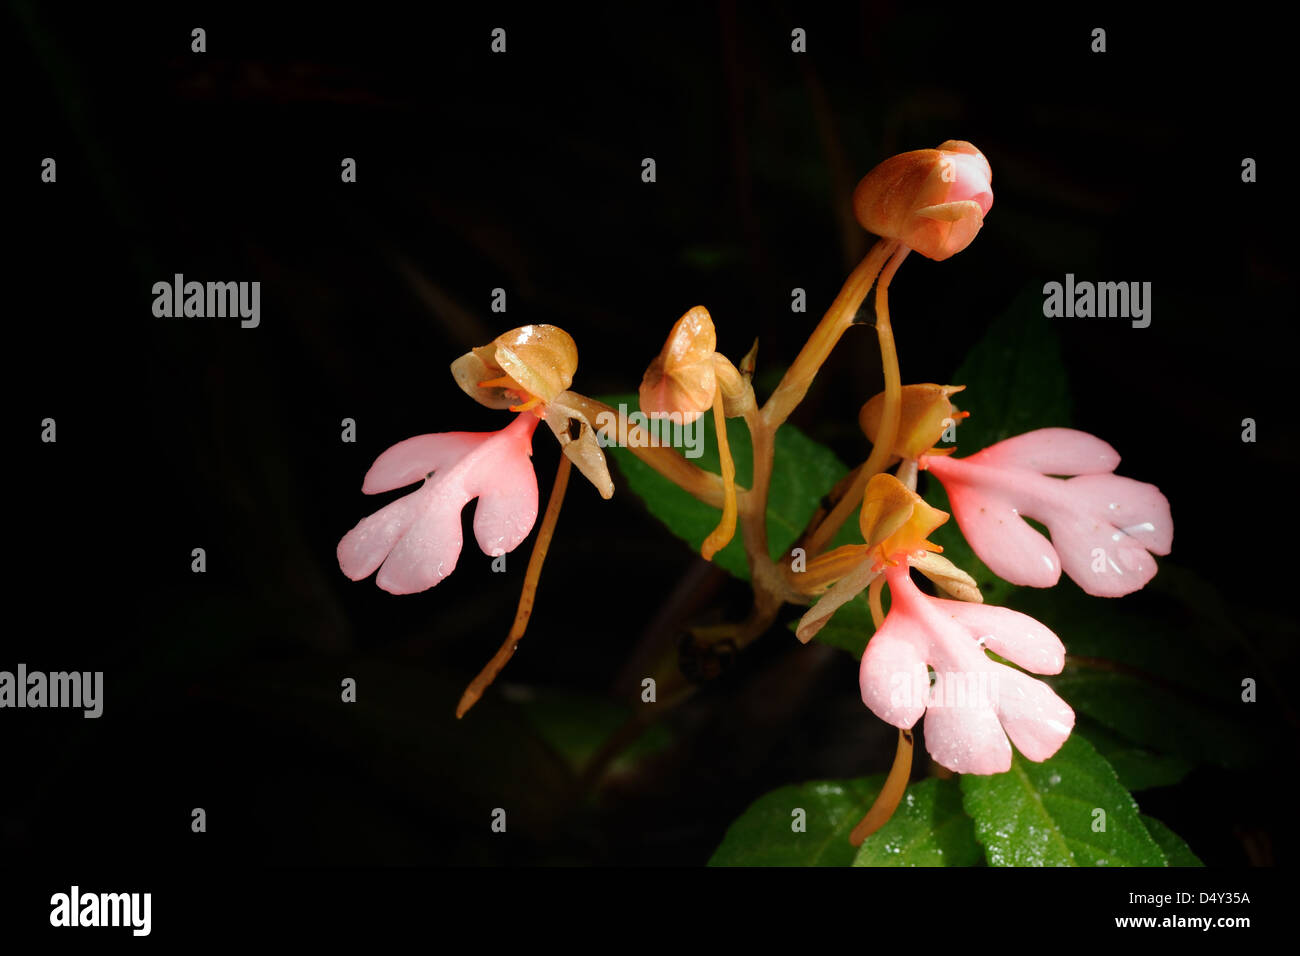 The Pink-Lipped Habenaria (Pink Snap Dragon Flower) found in tropical rain forests,NationalPark Thailand. Stock Photo